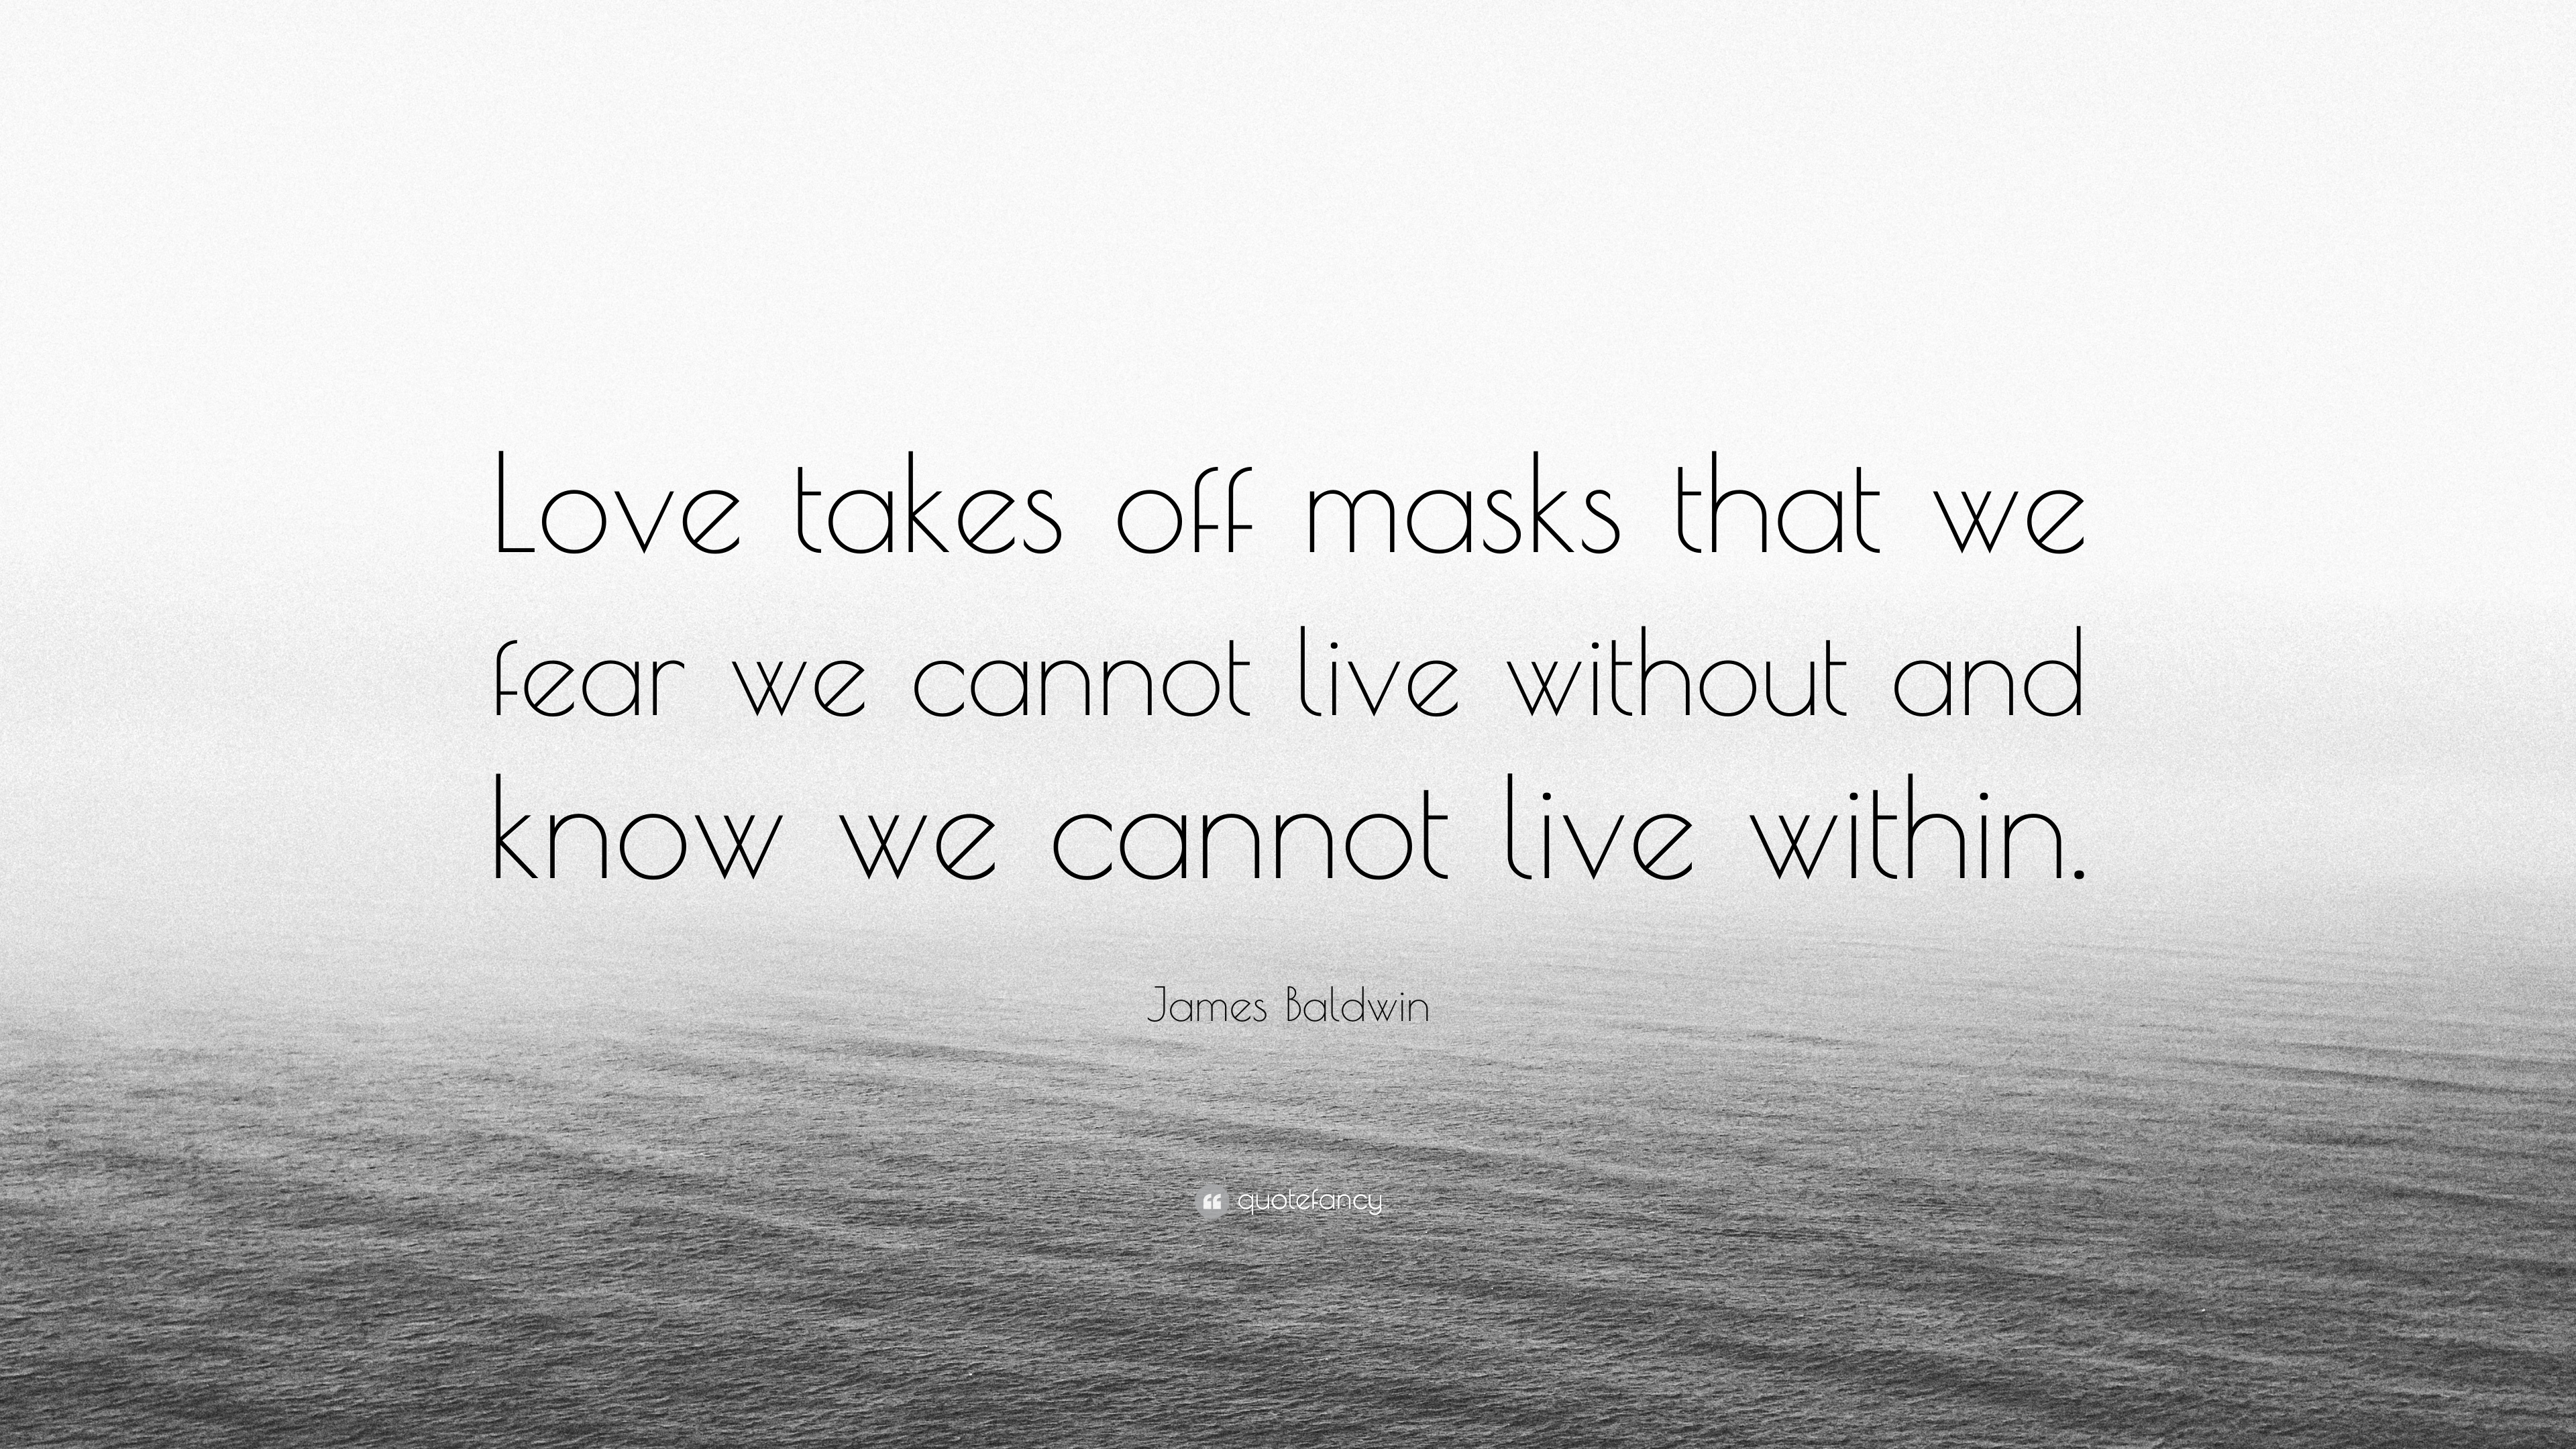 Exceptionnel James Baldwin Quote: U201cLove Takes Off Masks That We Fear We Cannot Live  Without